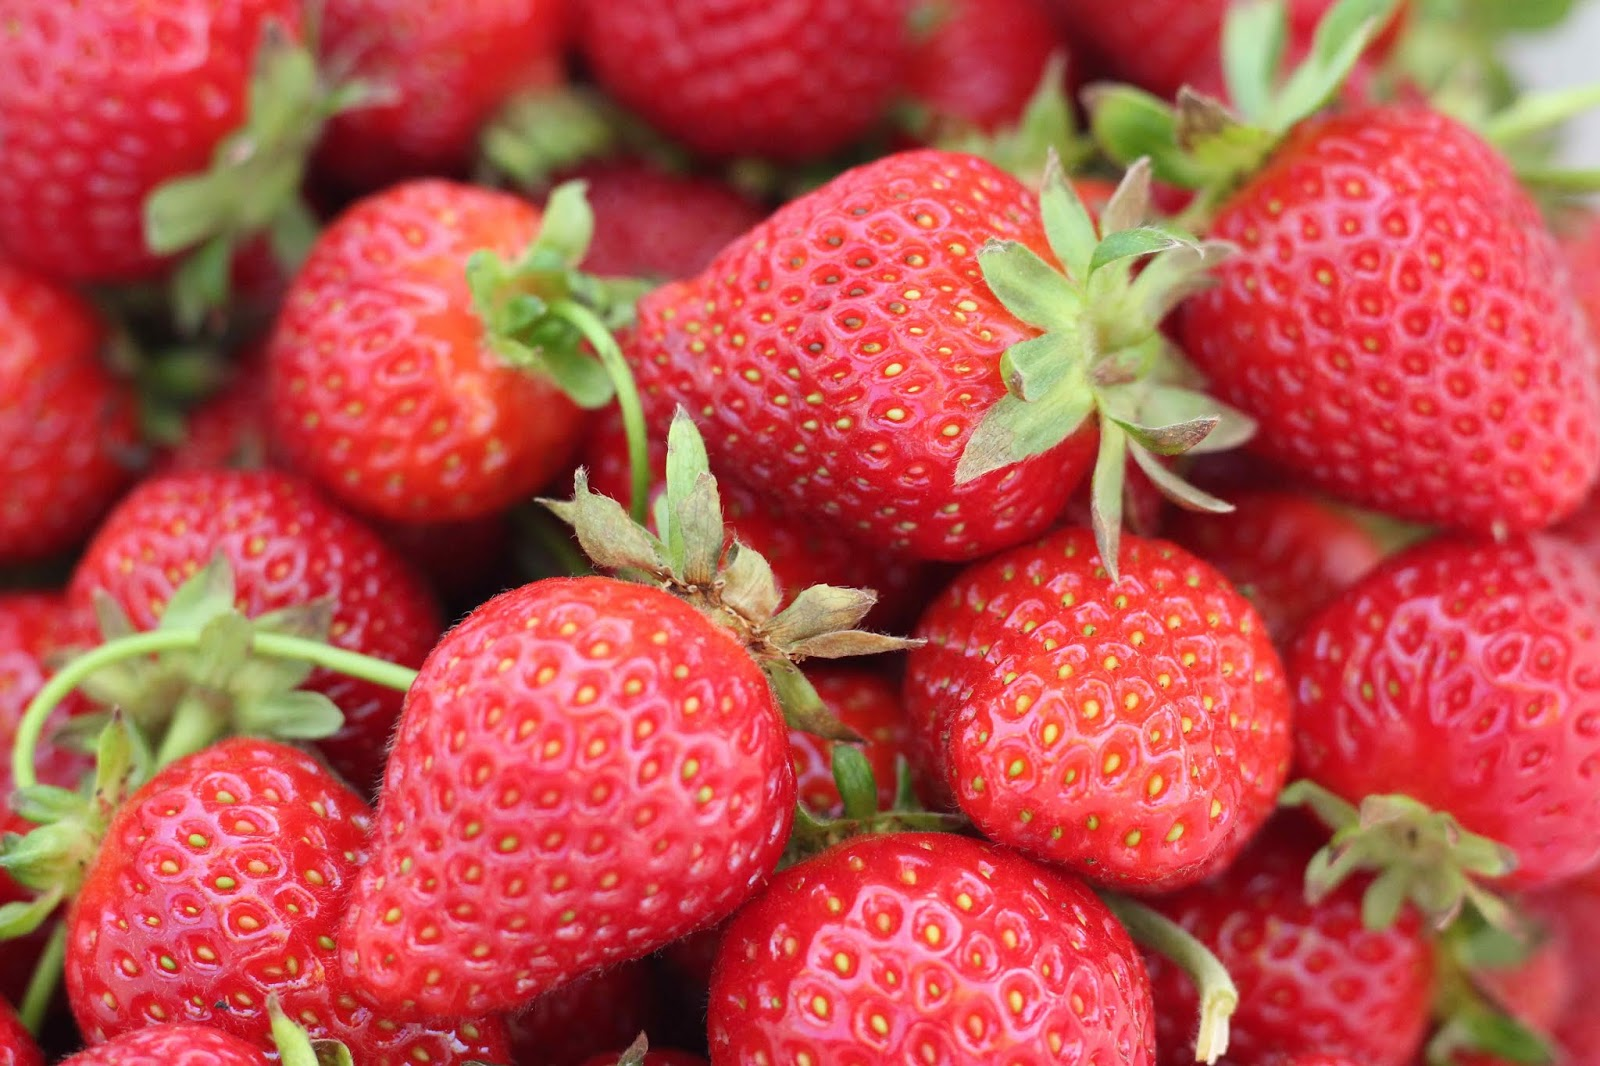 Best Foods to Control Diabetes - Both Type 1 and Type 2 - Strawberries